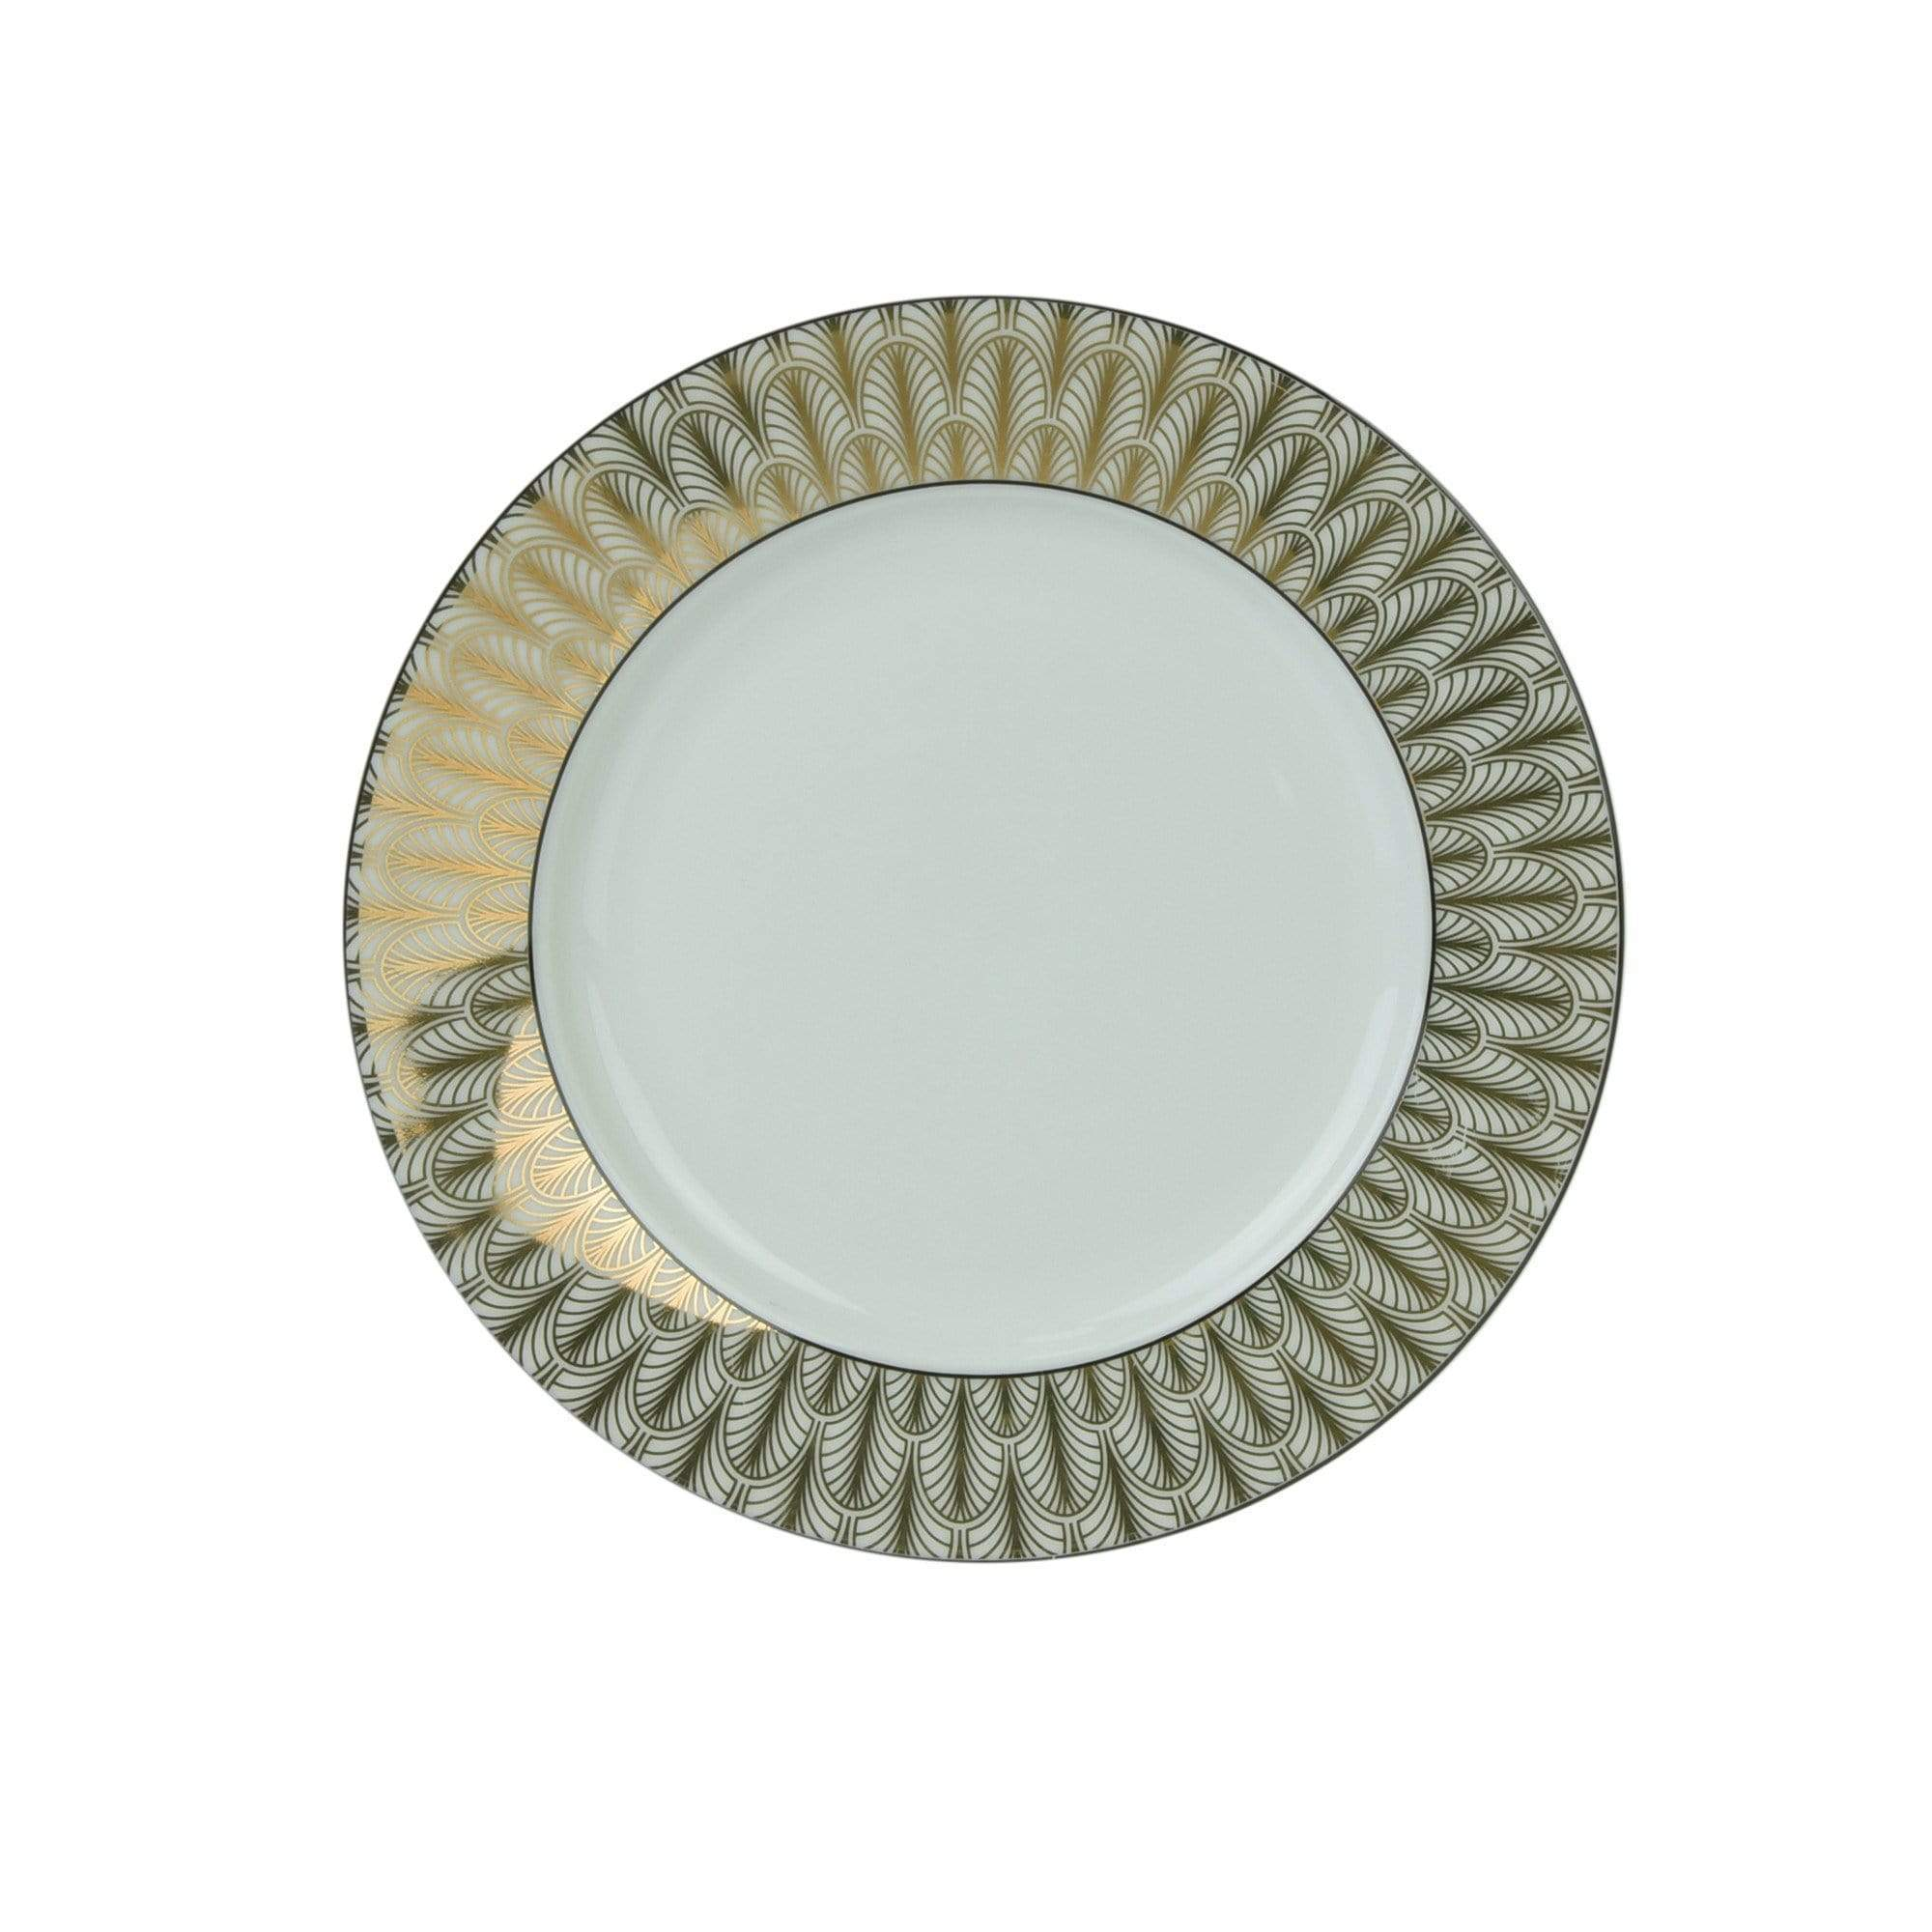 Deco Glam Side Plate with Feather Detail - Black and Gold